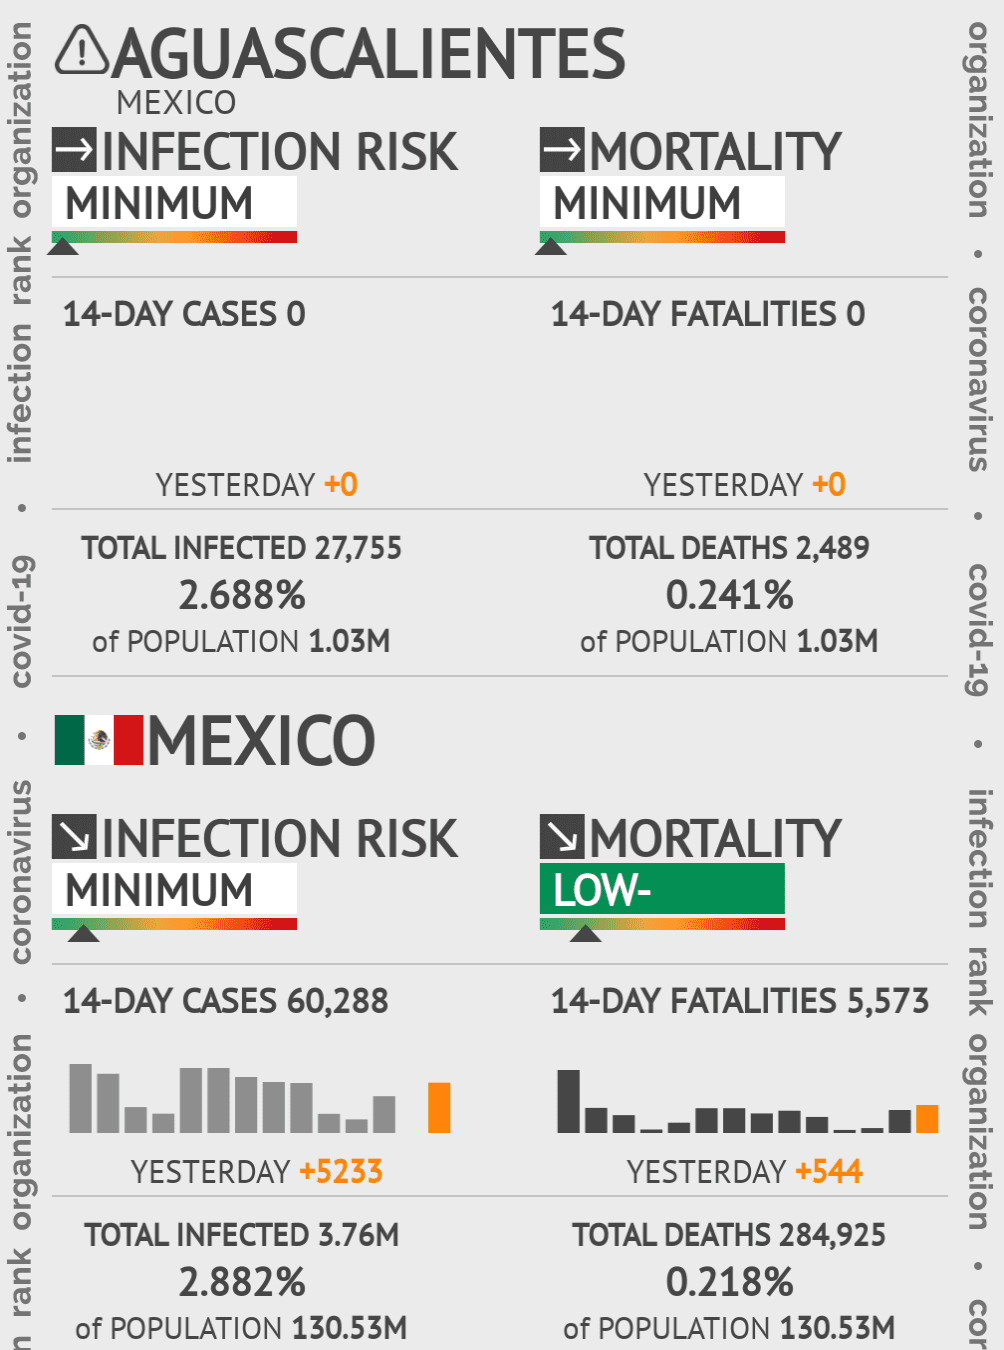 Aguascalientes Coronavirus Covid-19 Risk of Infection on March 03, 2021